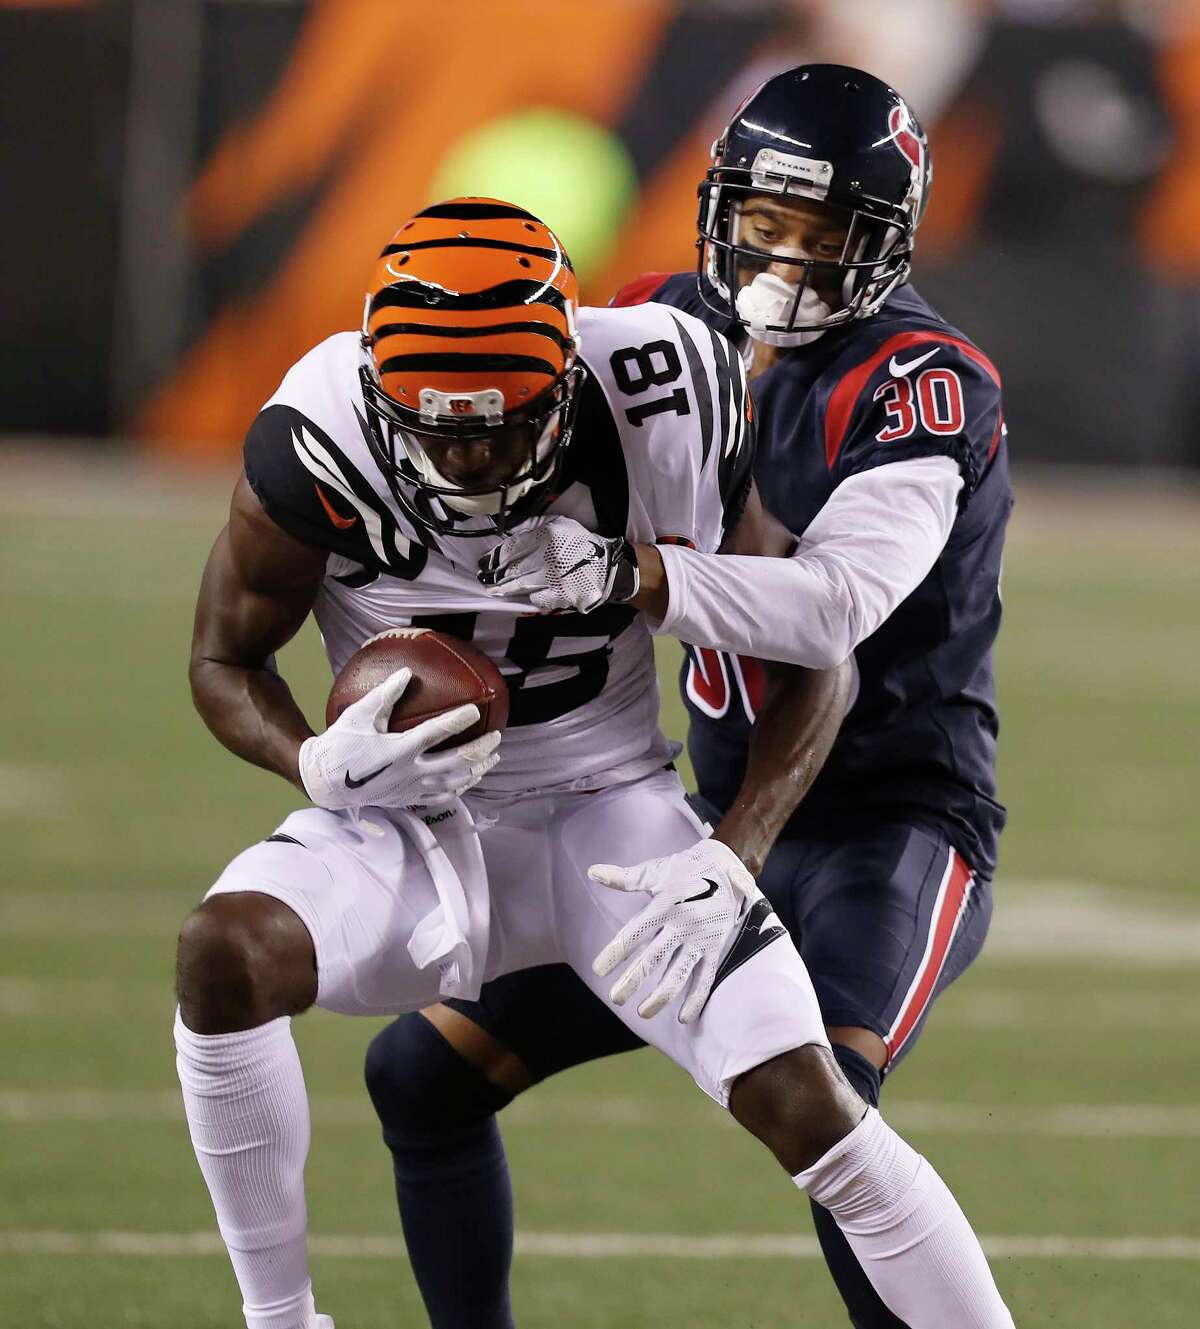 Cincinnati Bengals wide receiver A.J. Green (18) tries to get loose from Houston Texans cornerback Kevin Johnson (30) during the second quarter of an NFL football game at Paul Brown Stadium on Thursday, Sept. 14, 2017, in Cincinnati. ( Brett Coomer / Houston Chronicle )